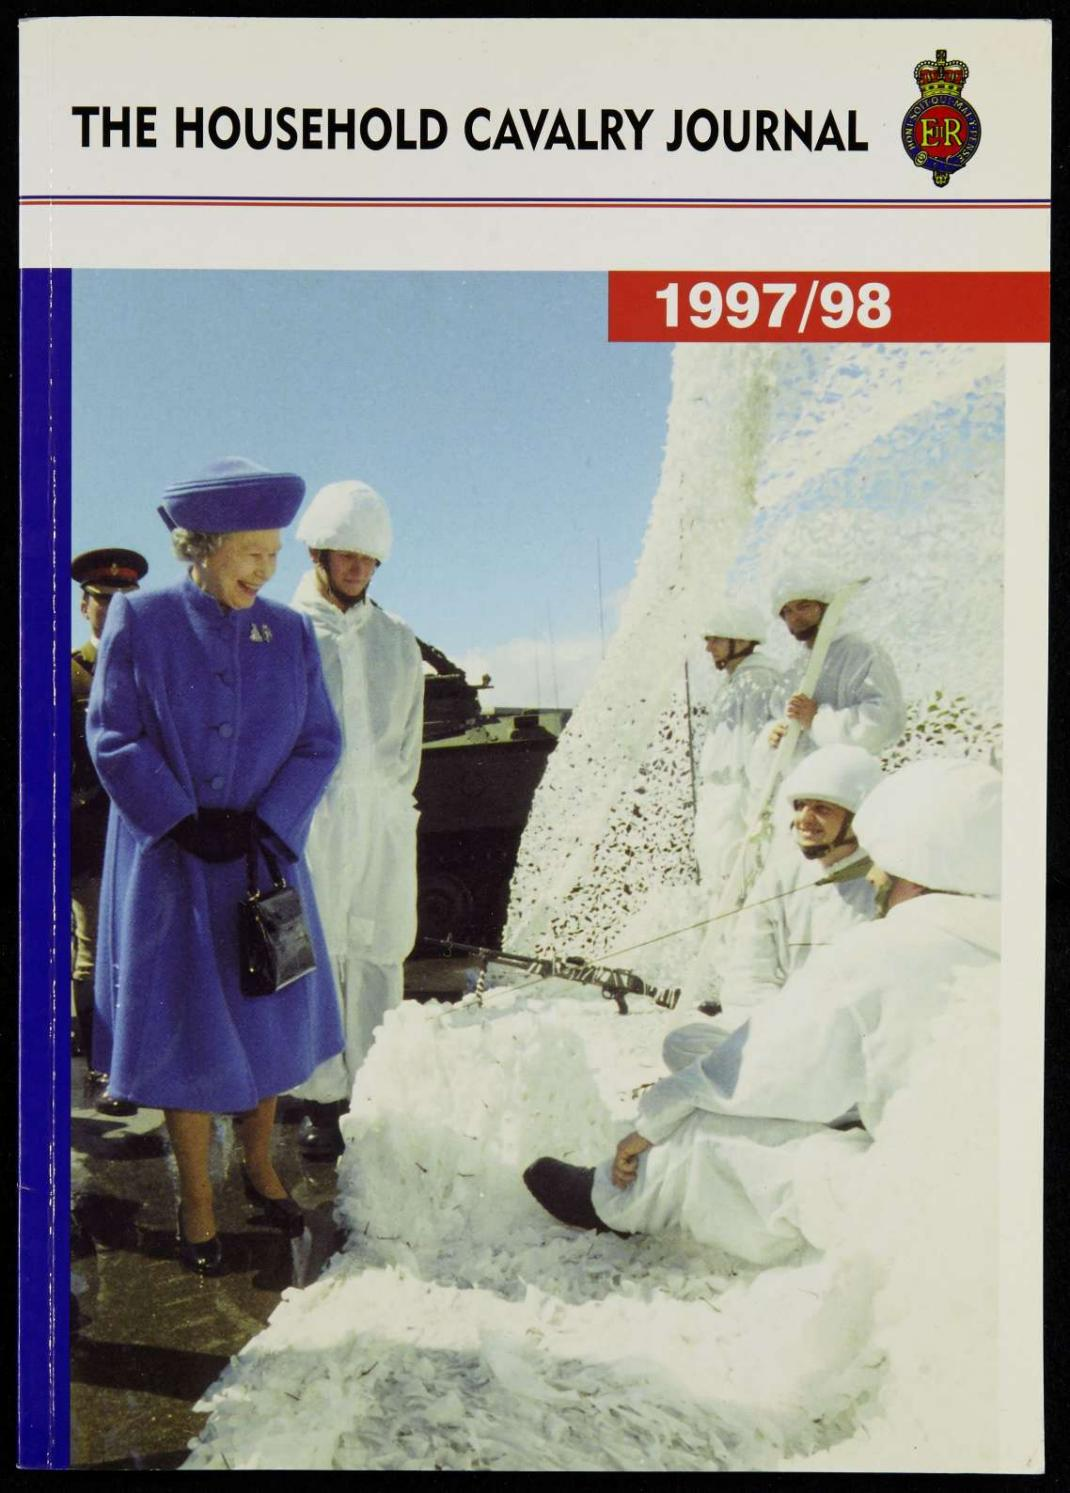 Household cavalry journal 1997 1998 ilovepdf compressed by LGregsec - issuu